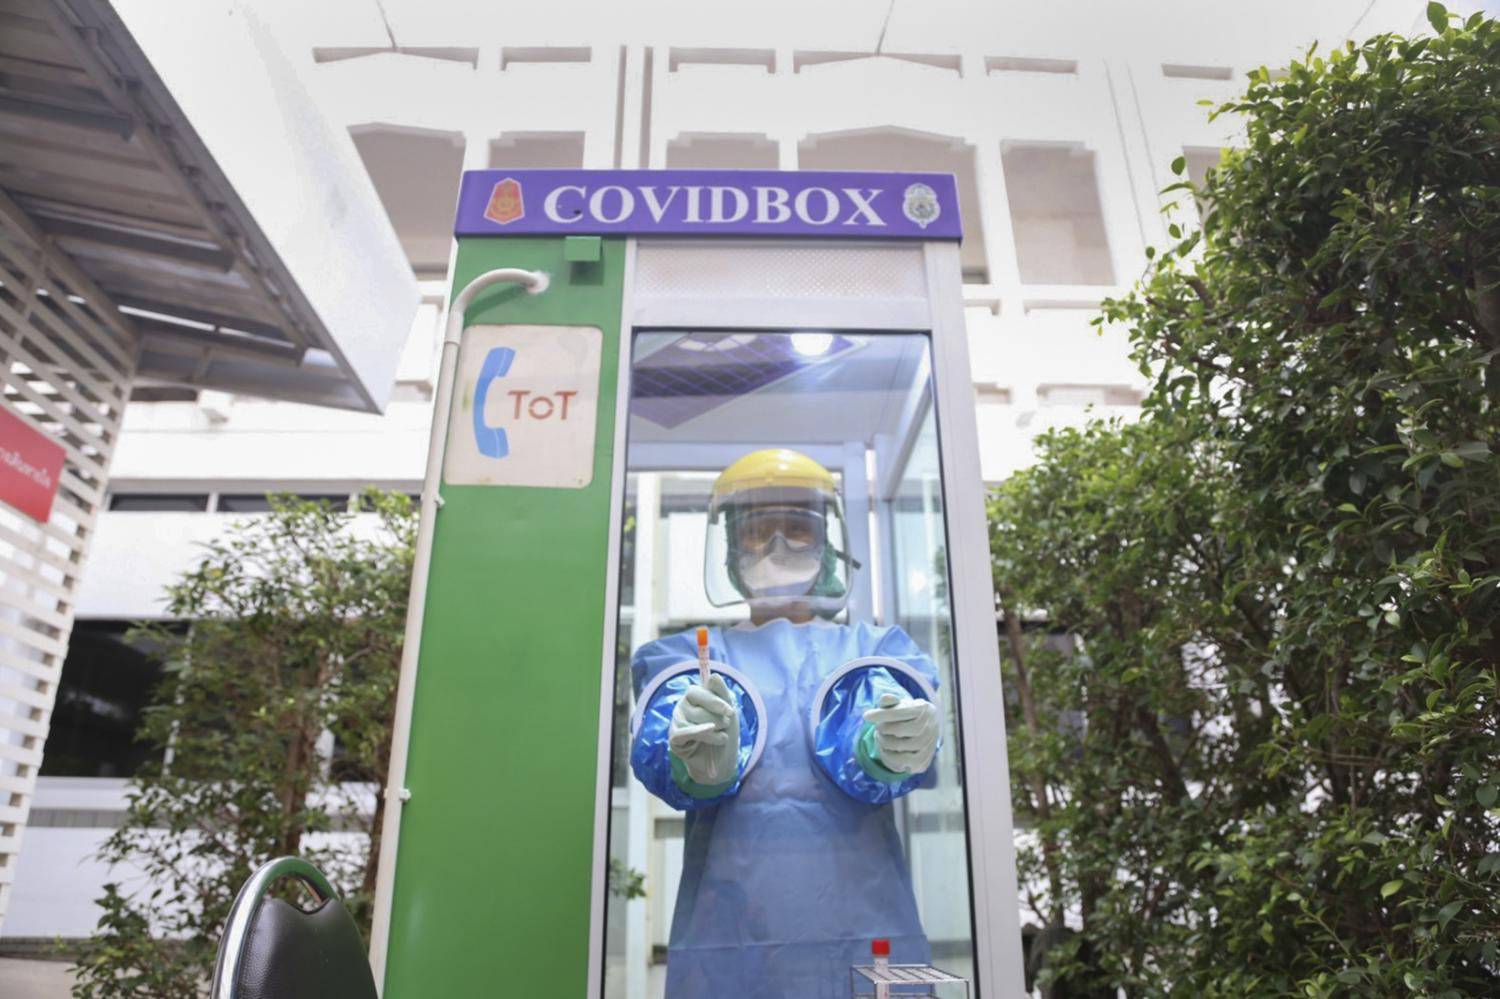 A TOT phone booth transformed into a makeshift Covid box for testing. The kiosk wards off the infection risk among healthcare workers.